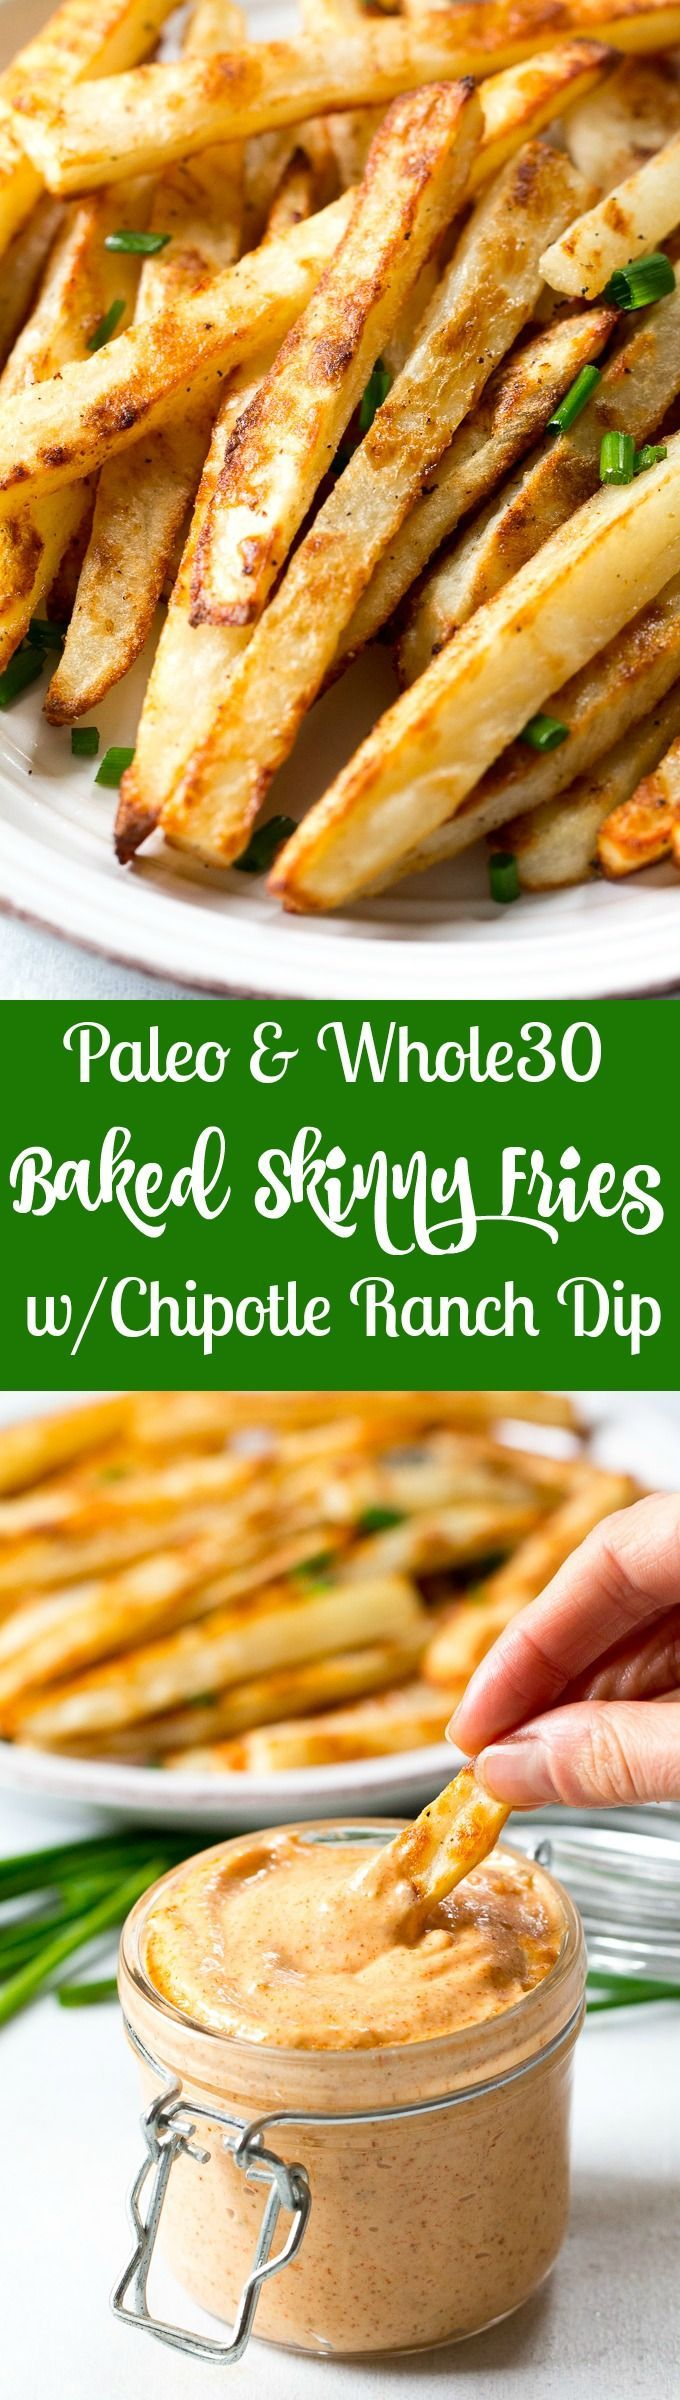 Easy to make crispy baked french fries with a spicy chipotle ranch dip that's Paleo and Whole30 compliant! Serve these baked french fries as a fun and healthy side dish, appetizer or snack.